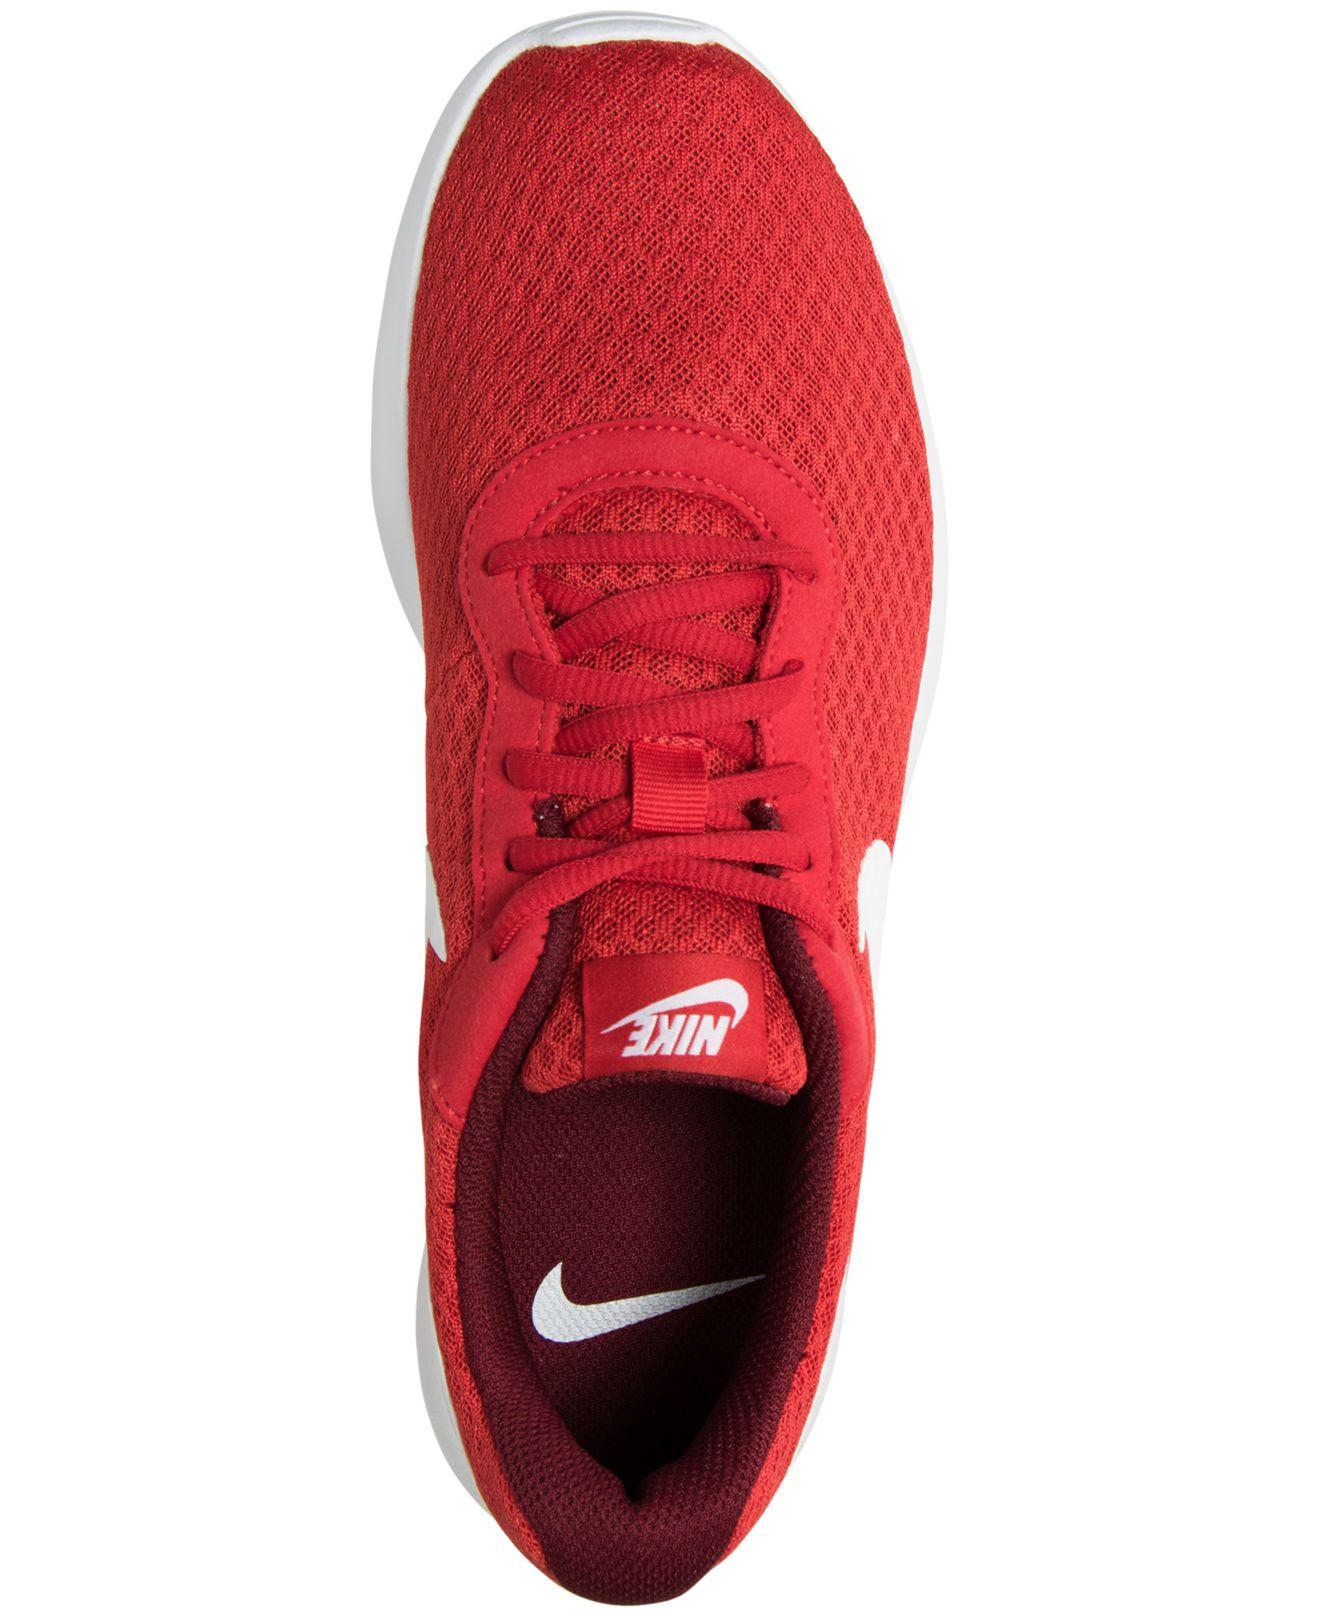 0afc4c143ac ... netherlands nike red tanjun casual sneakers from finish line for men  lyst. view fullscreen ae590